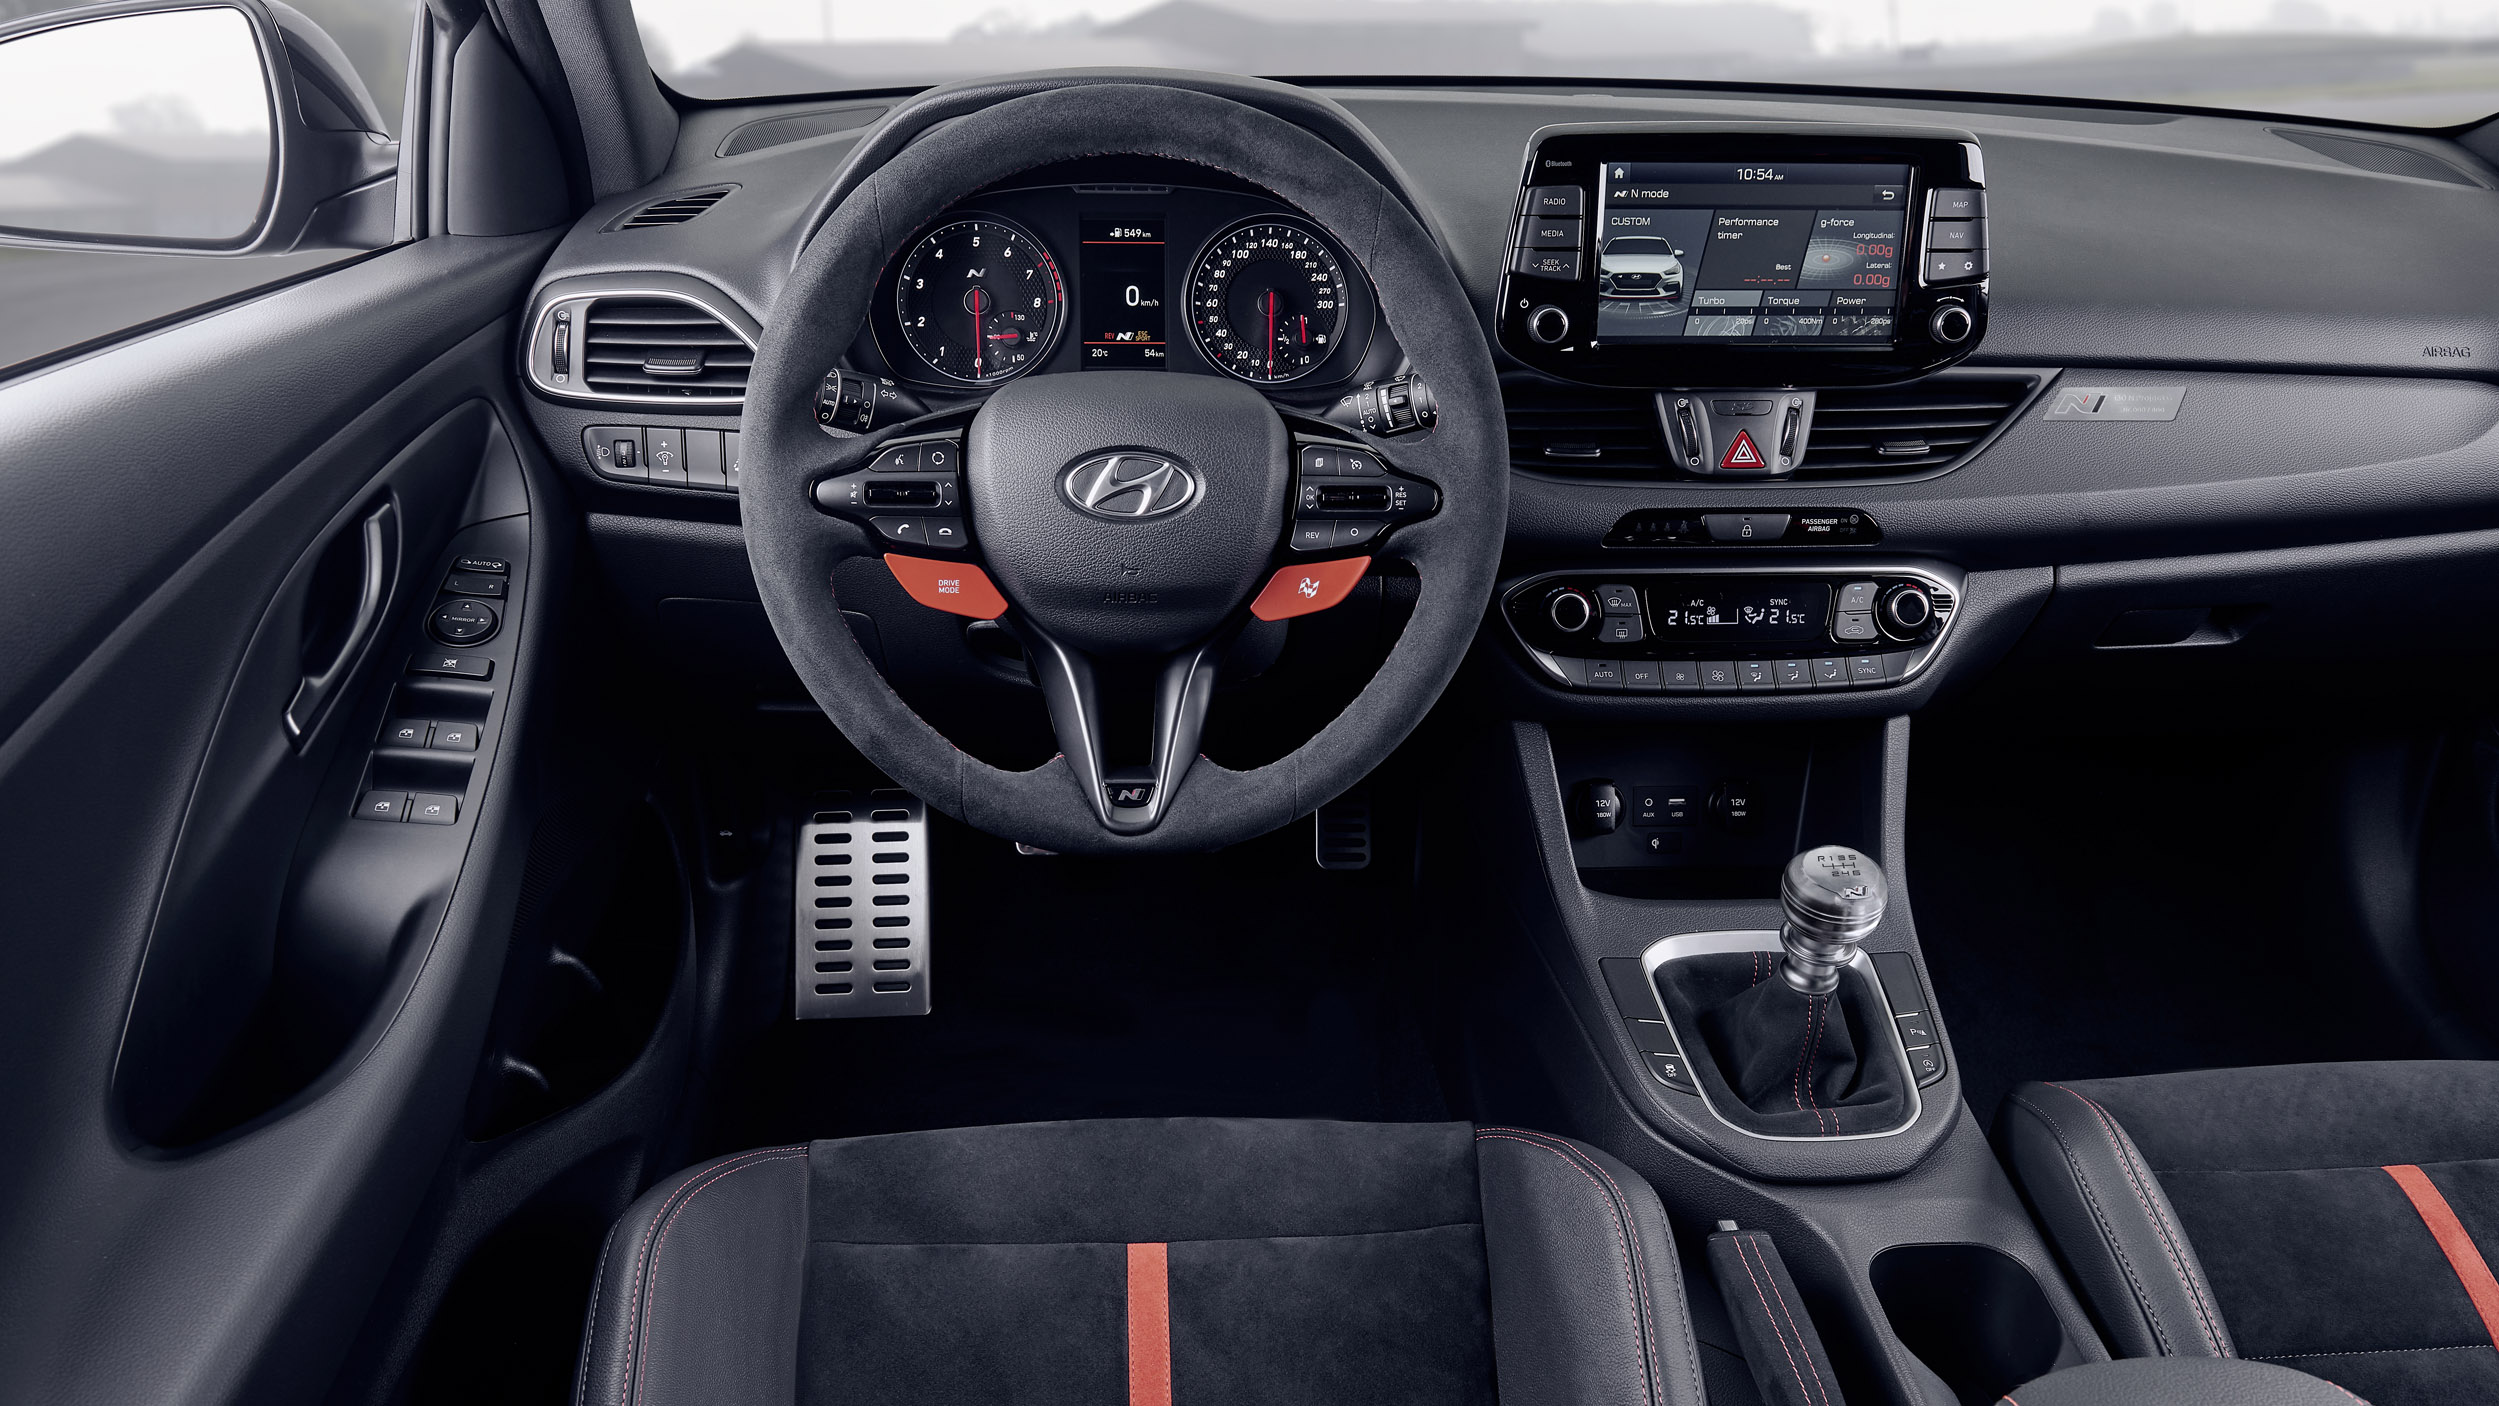 Certified Pre Owned Hyundai >> Hyundai i30 N Project C is a lighter hot hatch for Europe ...